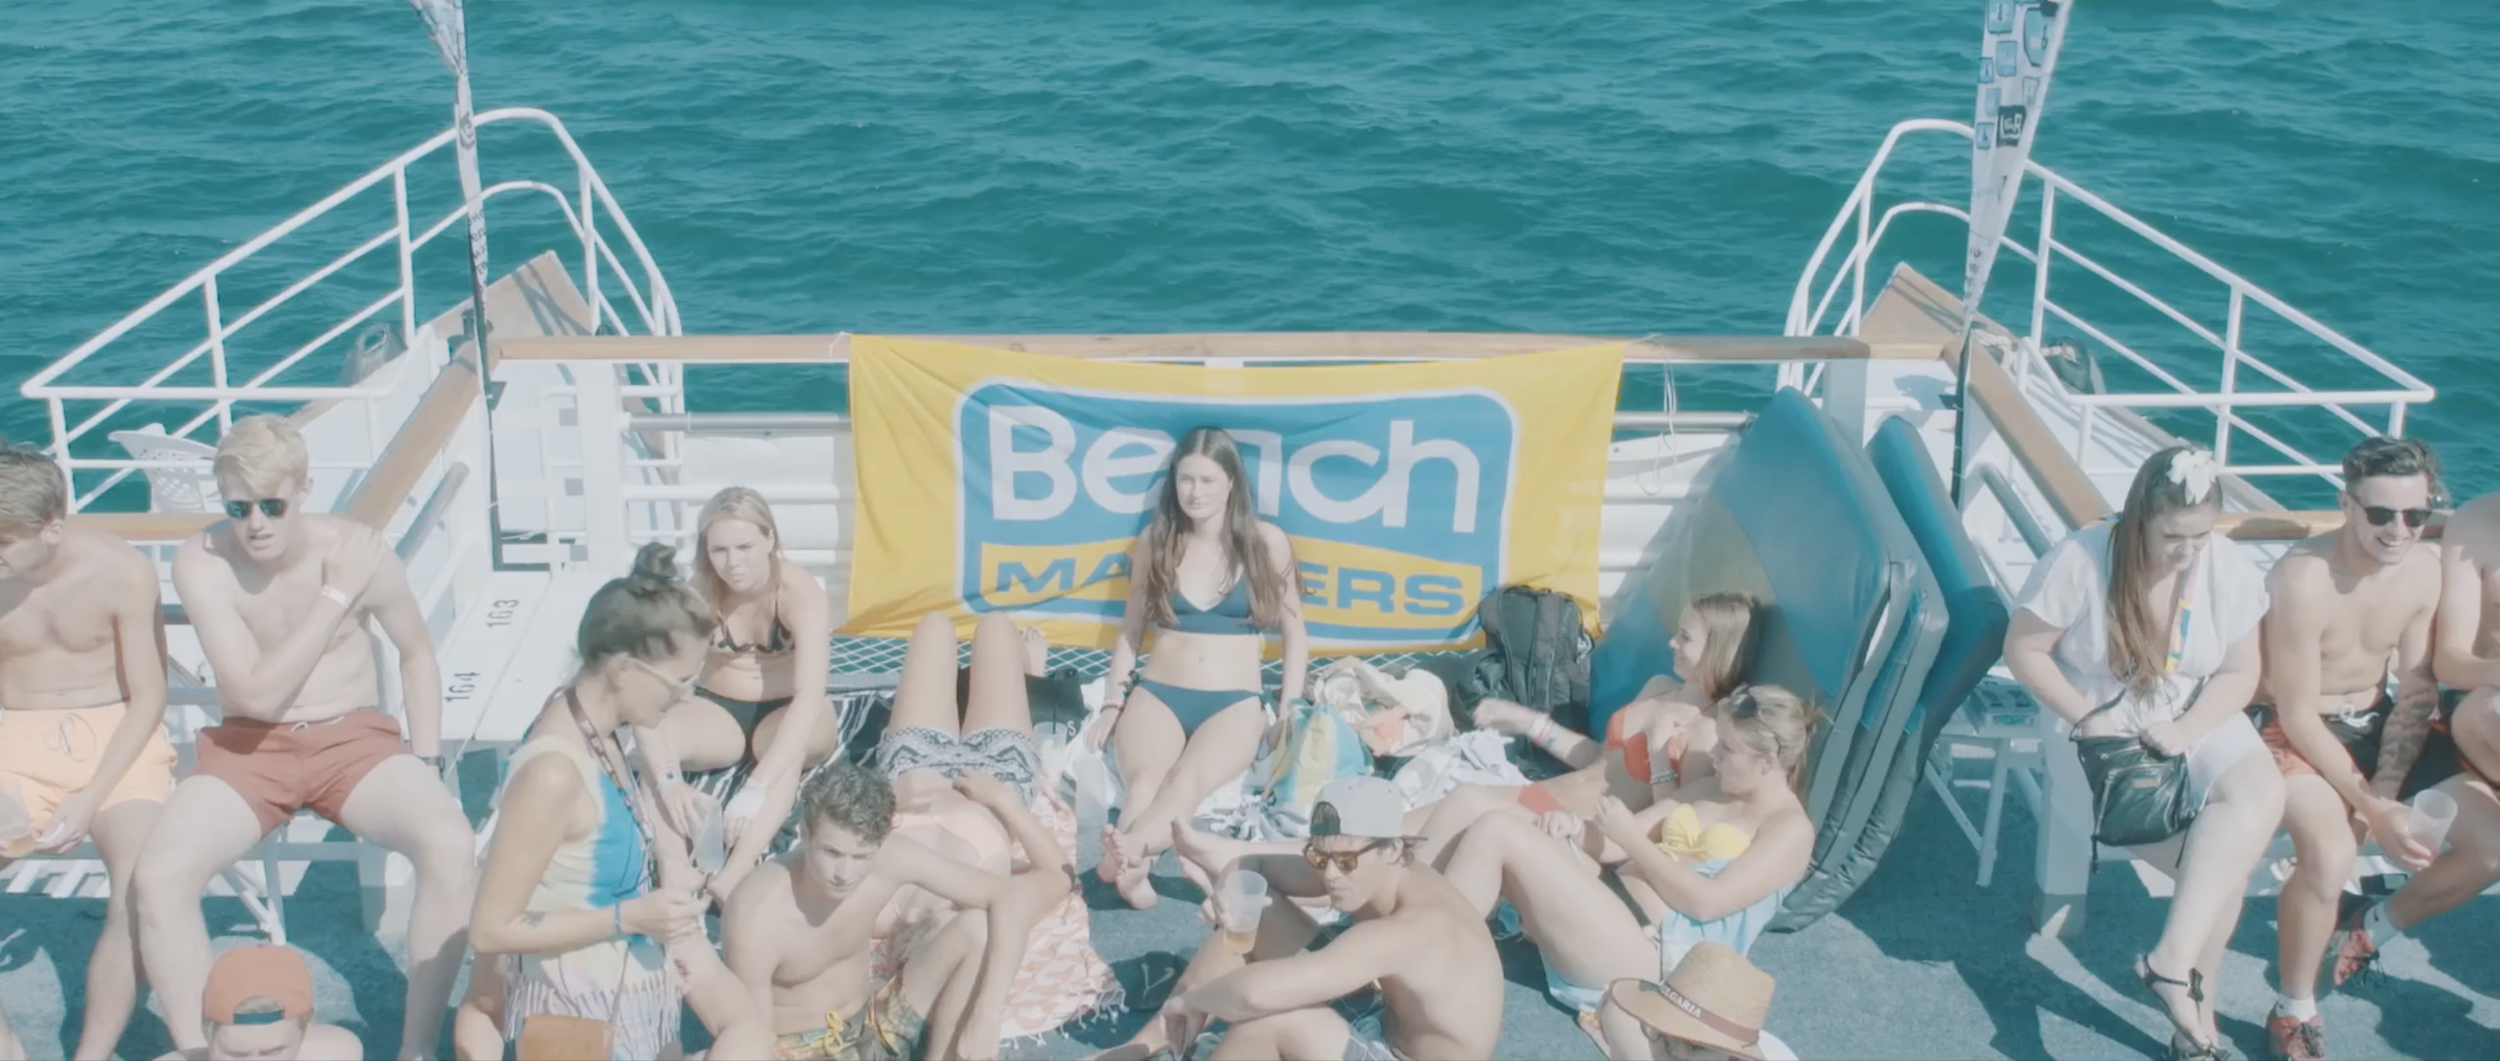 Gogo and Beachmasters are two travel agencies focussing on youngsters looking for a good time in the sun.